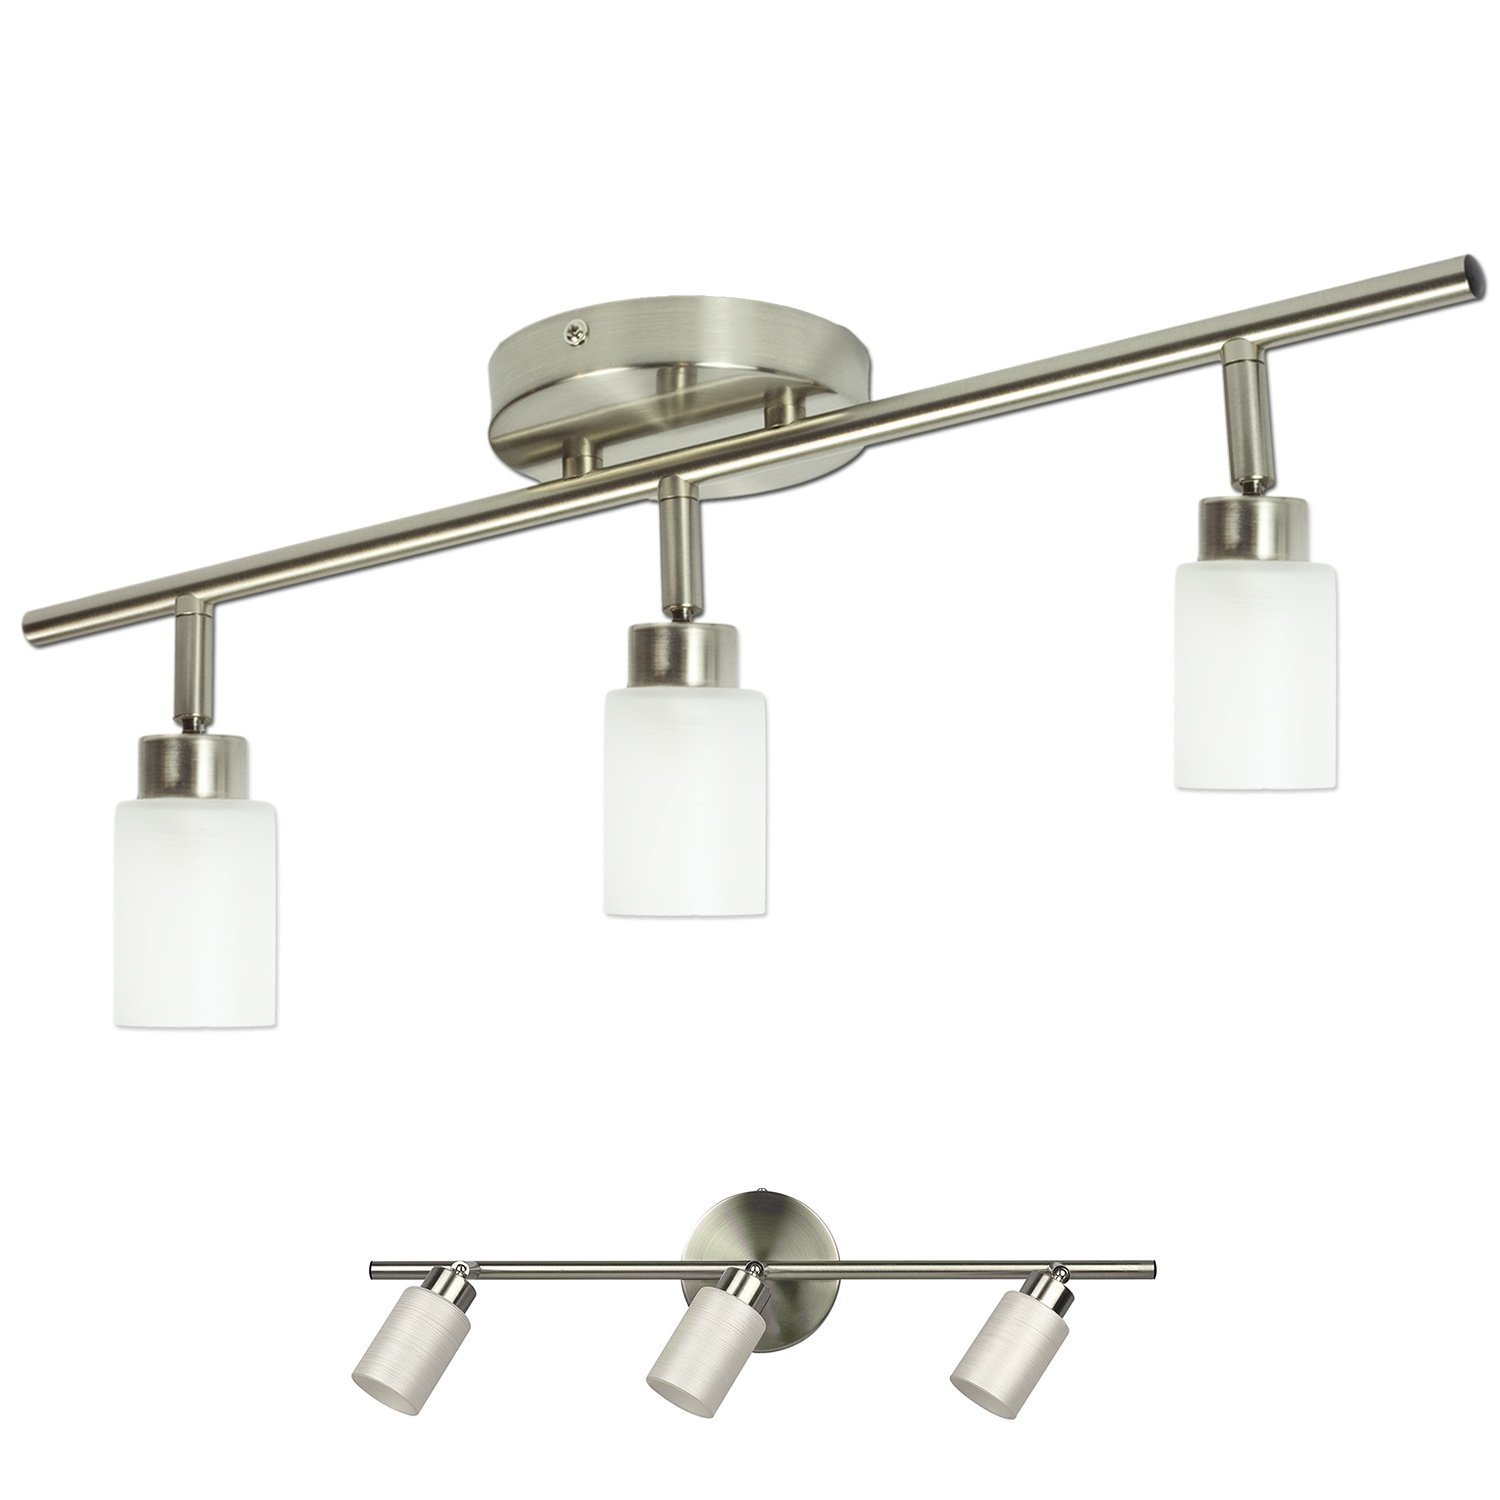 Brushed nickel 3 light track lighting fixture wall or ceiling mount amazon com